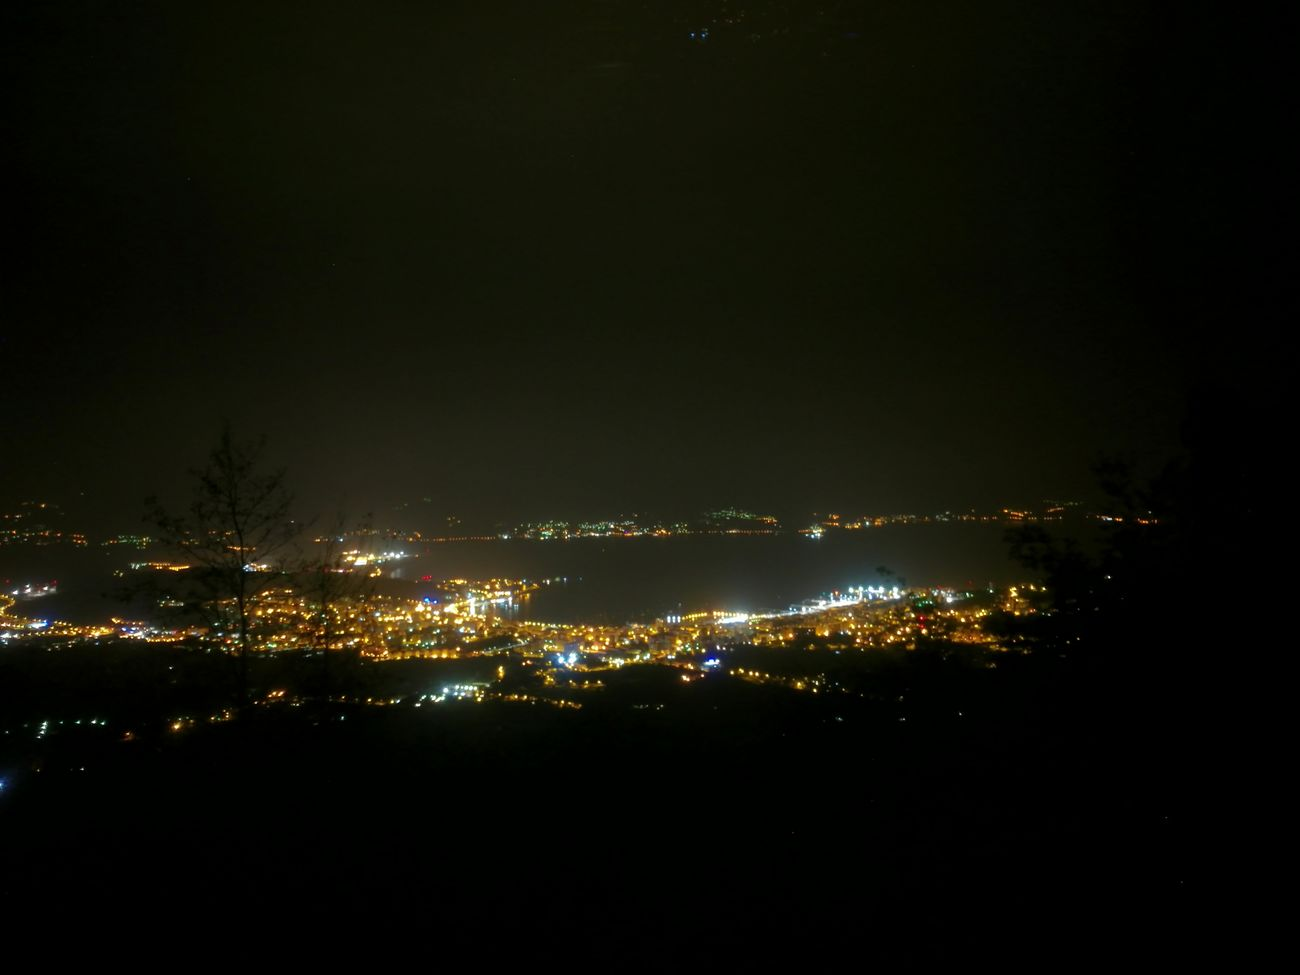 Illuminated Night City No People Light And Shadow Nightphotography Ombres Et Lumières Photo De Nuit Nuit Ajaccio Corse Lumières De Nuit Flying High